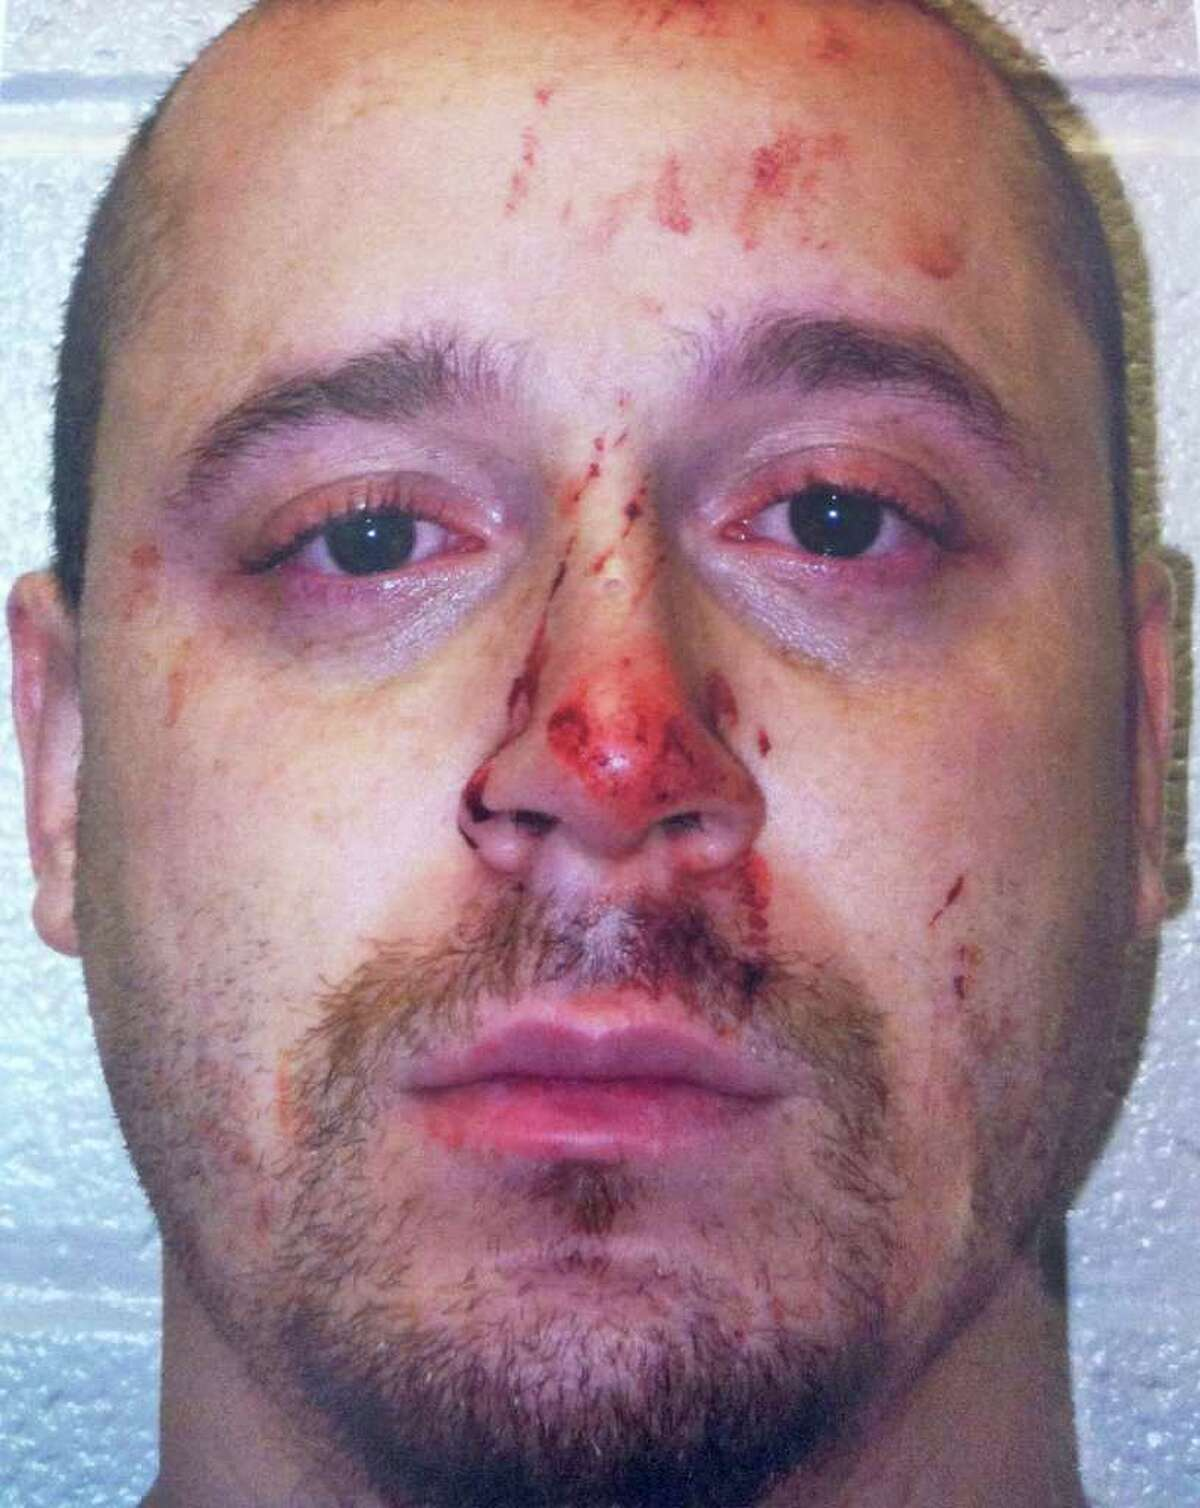 Christian Vasquez, 30, of Washington Village, Norwalk was charged with attempted murder after he flew into a rage during an argument with the 32-year-old mother of his young son and stabbed her several times early Thursday morning. The fight began over a disagreement with the mother of his 2-year-old son about her disciplining the boy too harshly. The blood all over his face came from his victim.